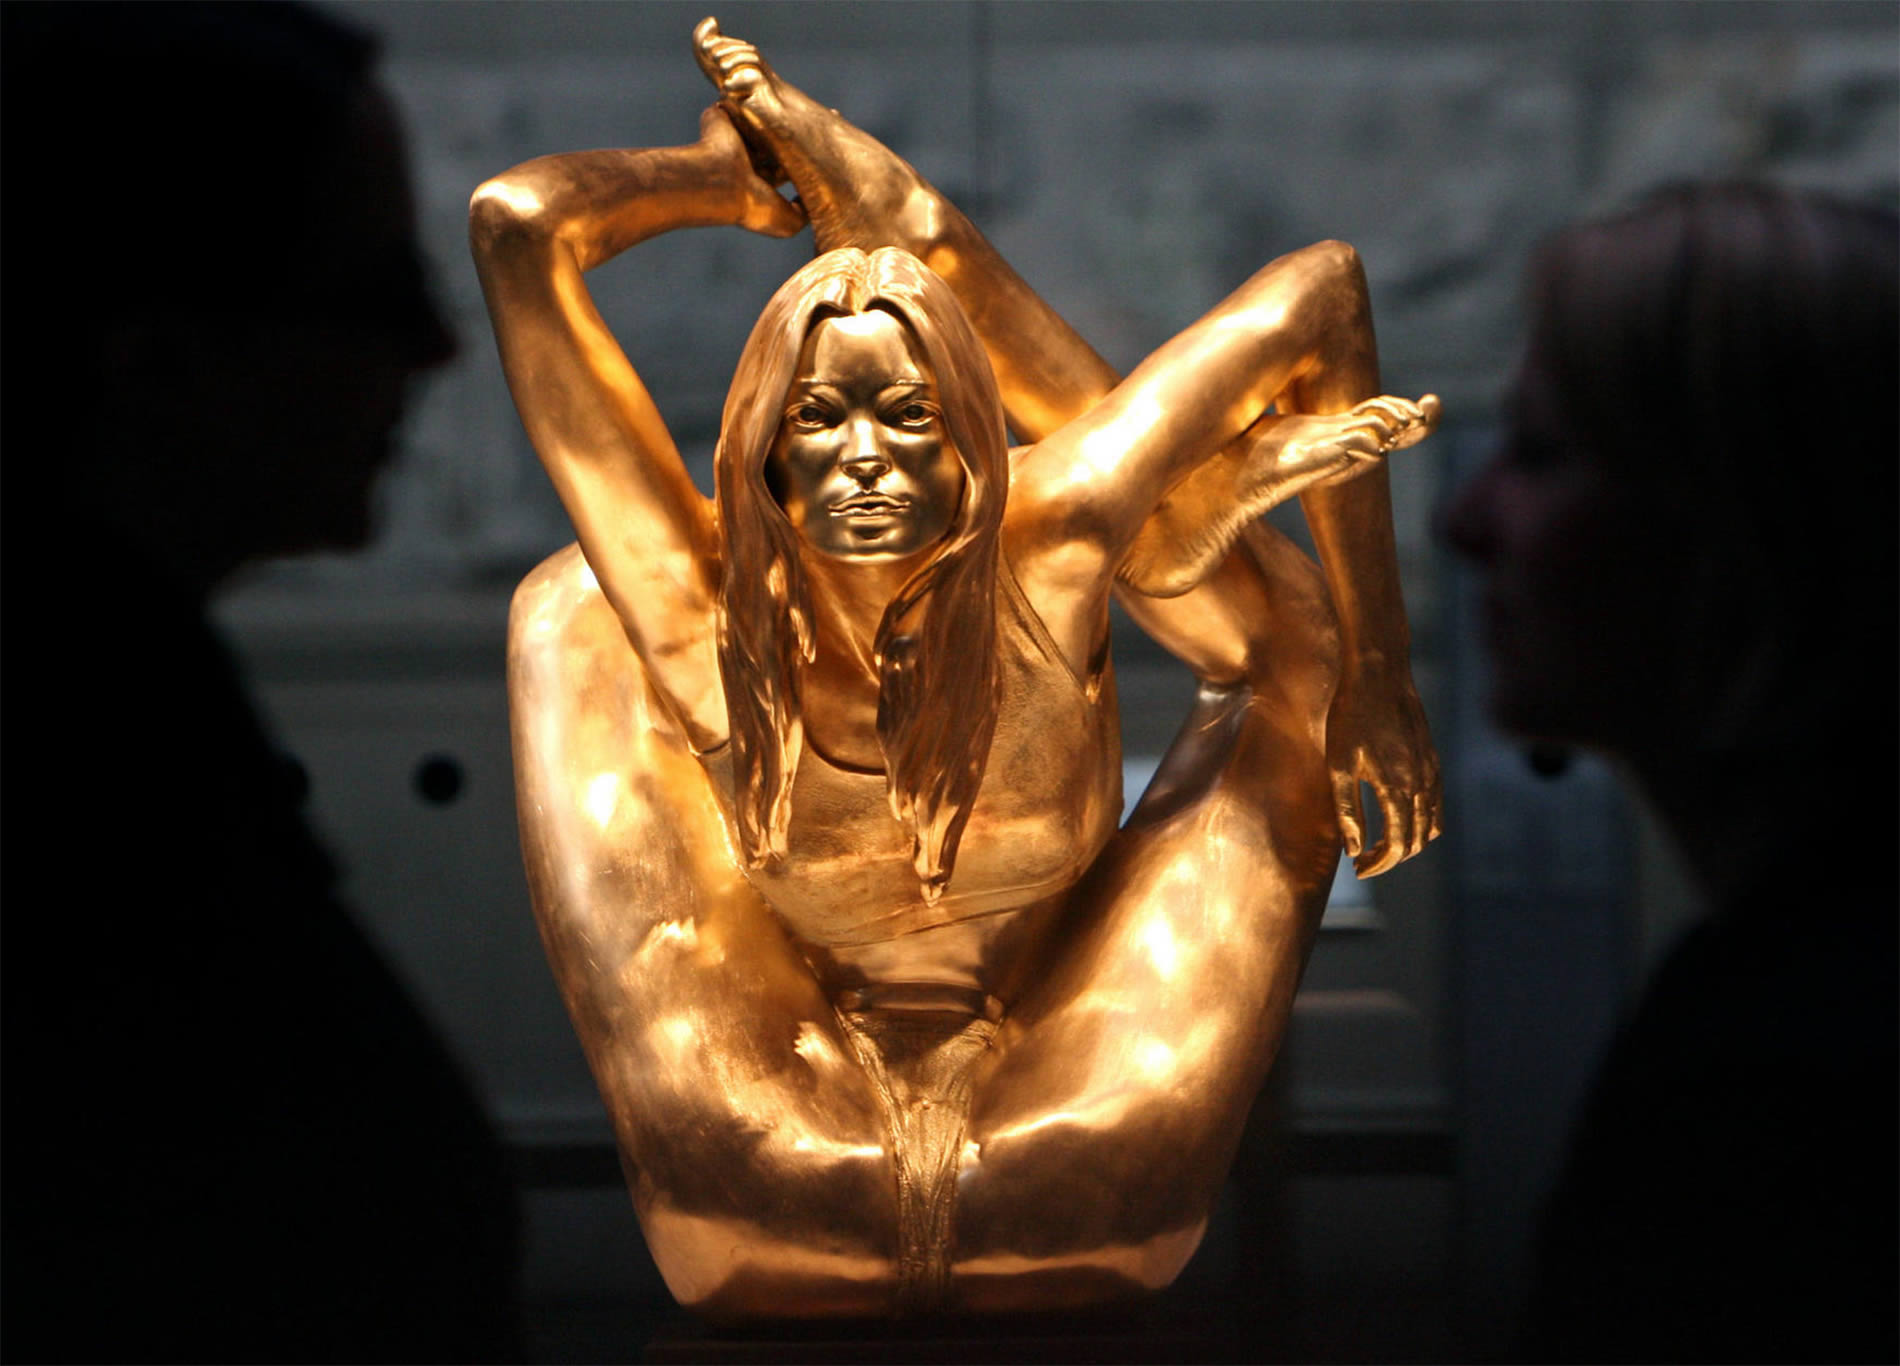 siren, marc quinn kate moss sculpture gold nude